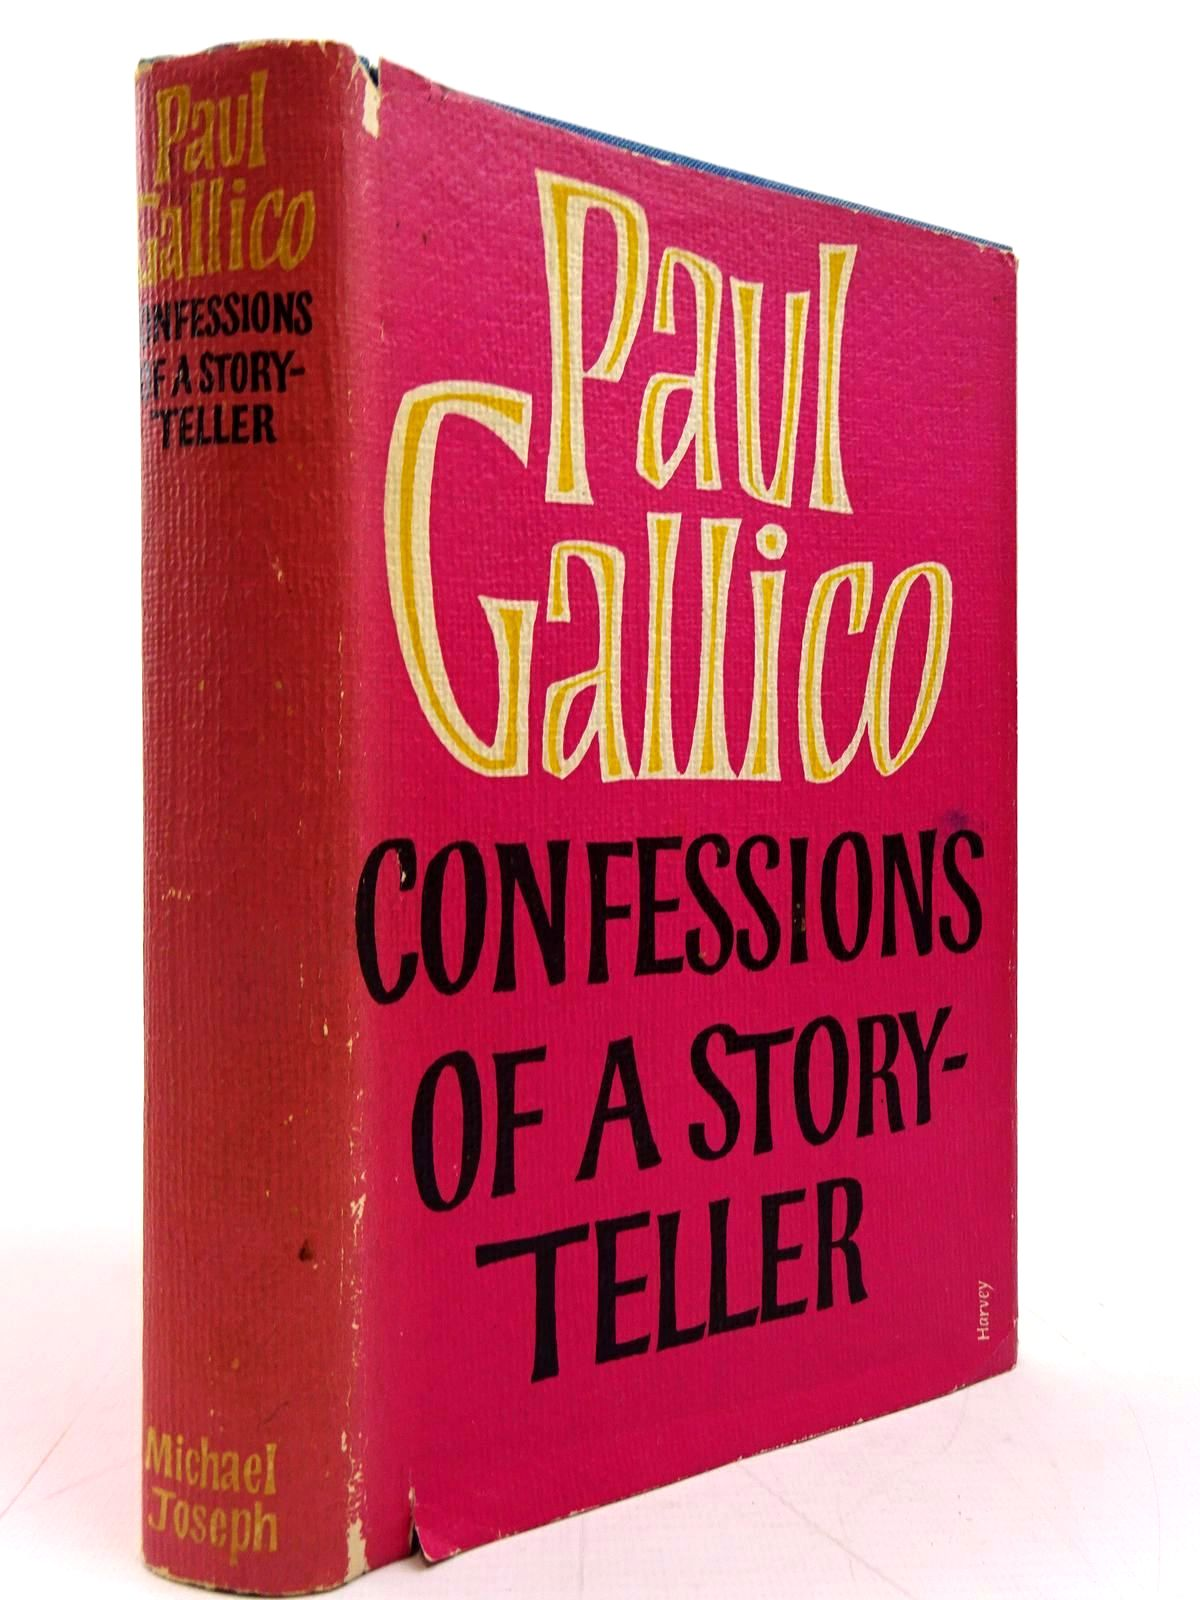 Photo of CONFESSIONS OF A STORY-TELLER written by Gallico, Paul published by Michael Joseph (STOCK CODE: 2131062)  for sale by Stella & Rose's Books